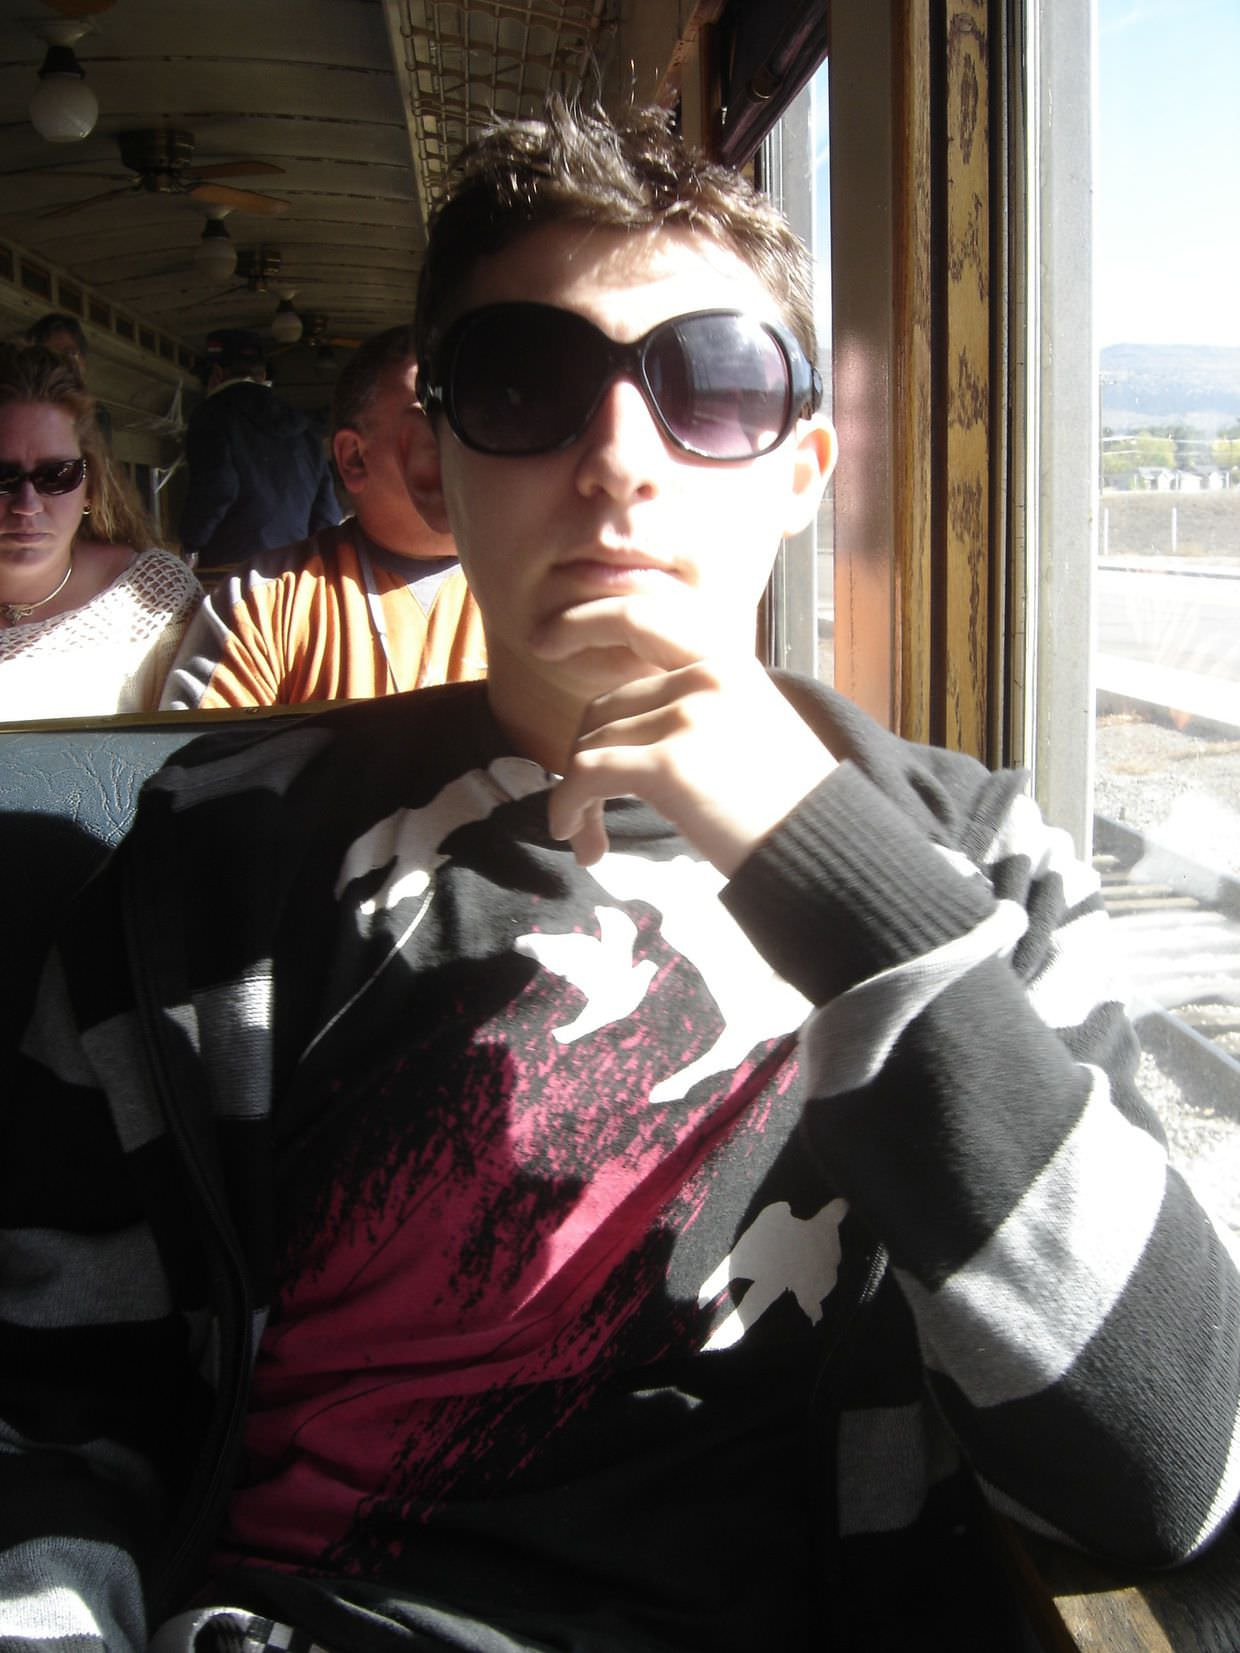 Paul on Heber valley train